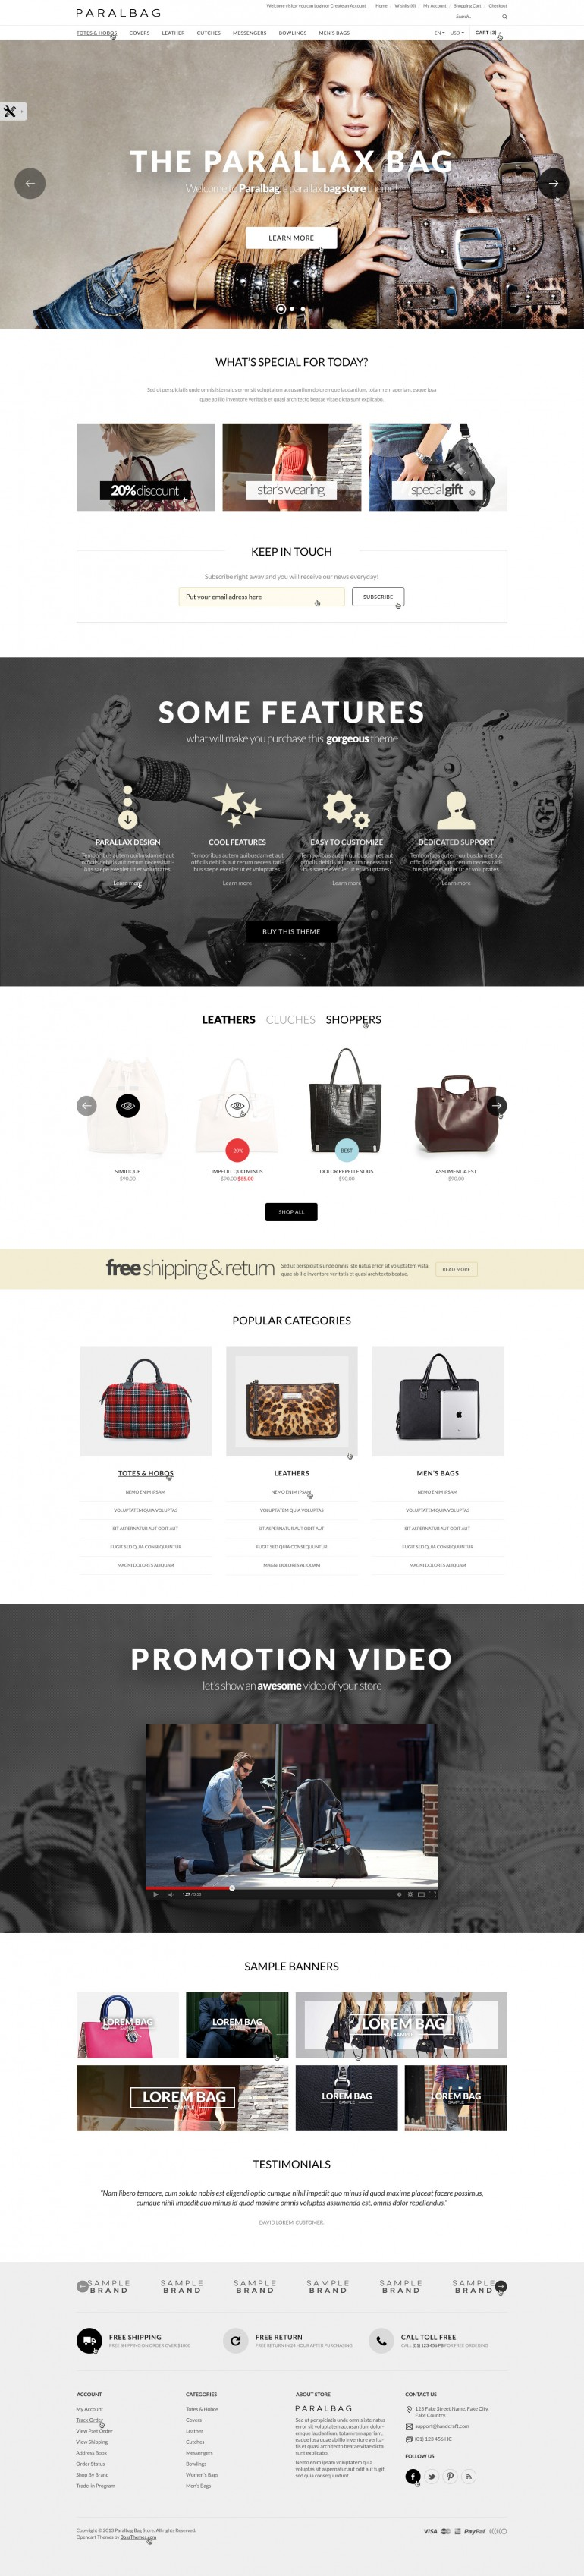 Opencart Fashion Bag Store – Parallax